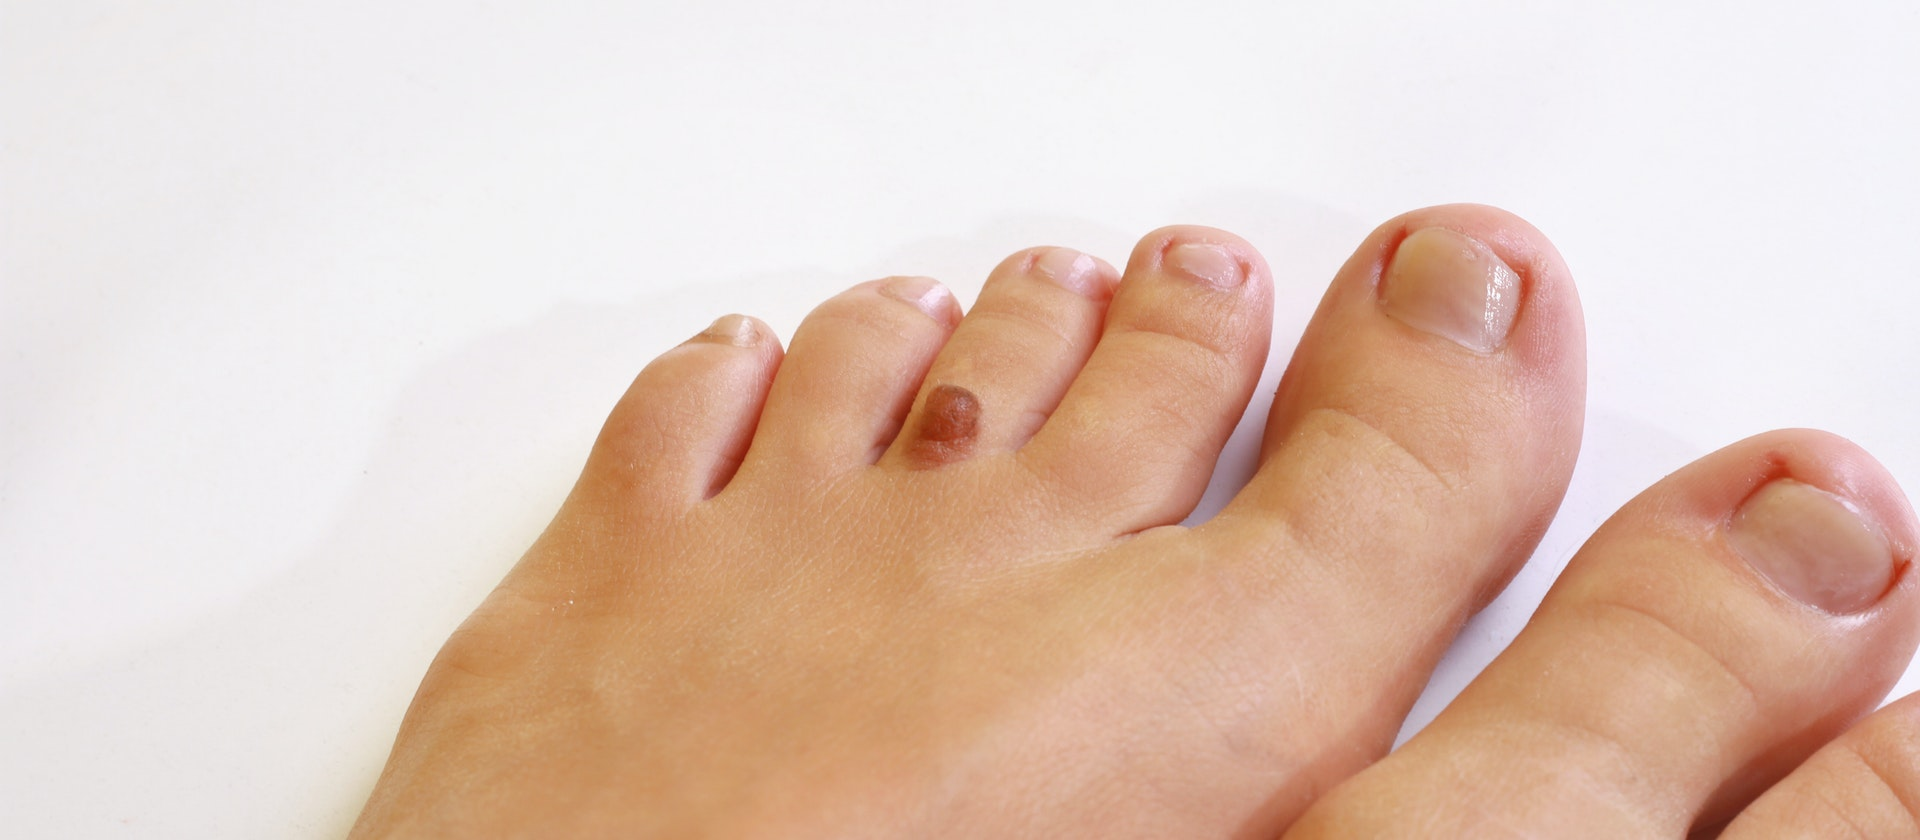 Black or Brown Foot Bump Symptoms, Causes & Common Questions | Buoy